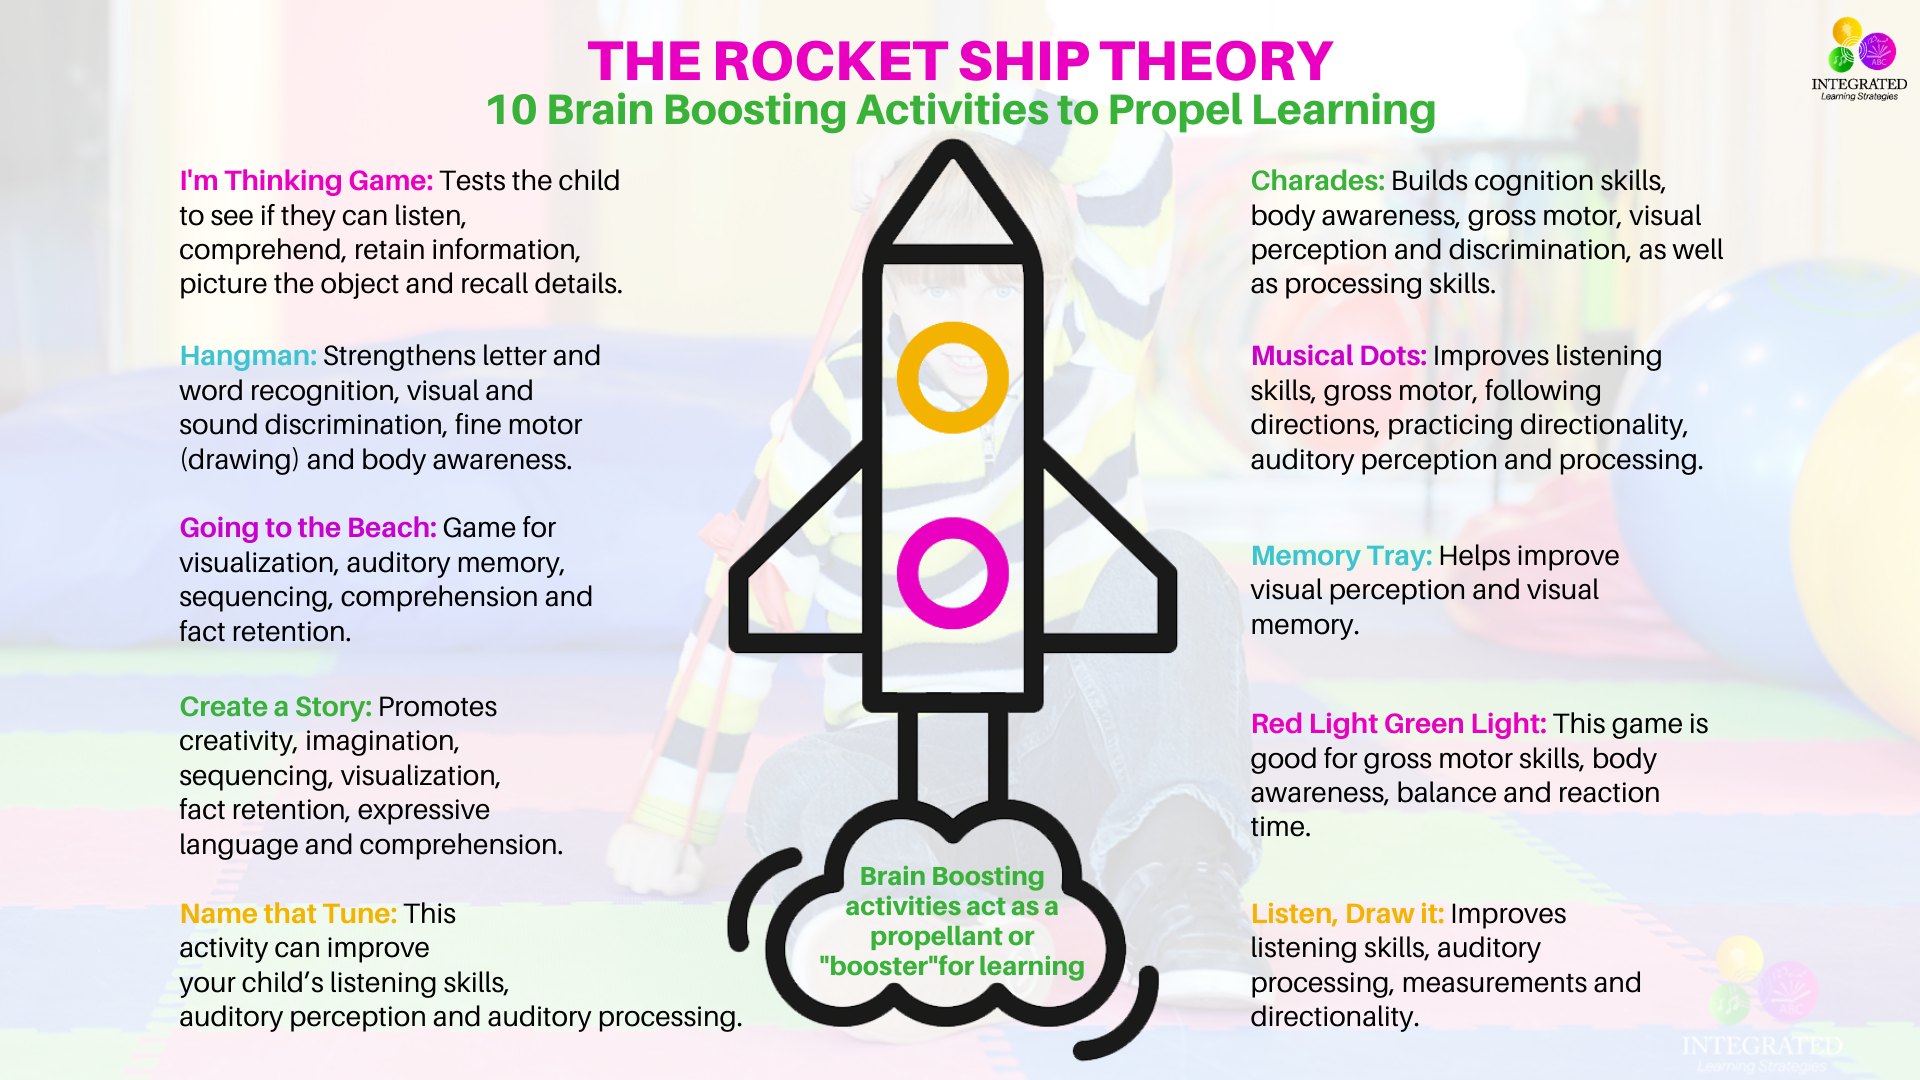 Rocket Ship Theory: 10 Brain Boosting Activities for Parents and Therapists who are now the 24/7 Teachers | ilslearaningcorner.com